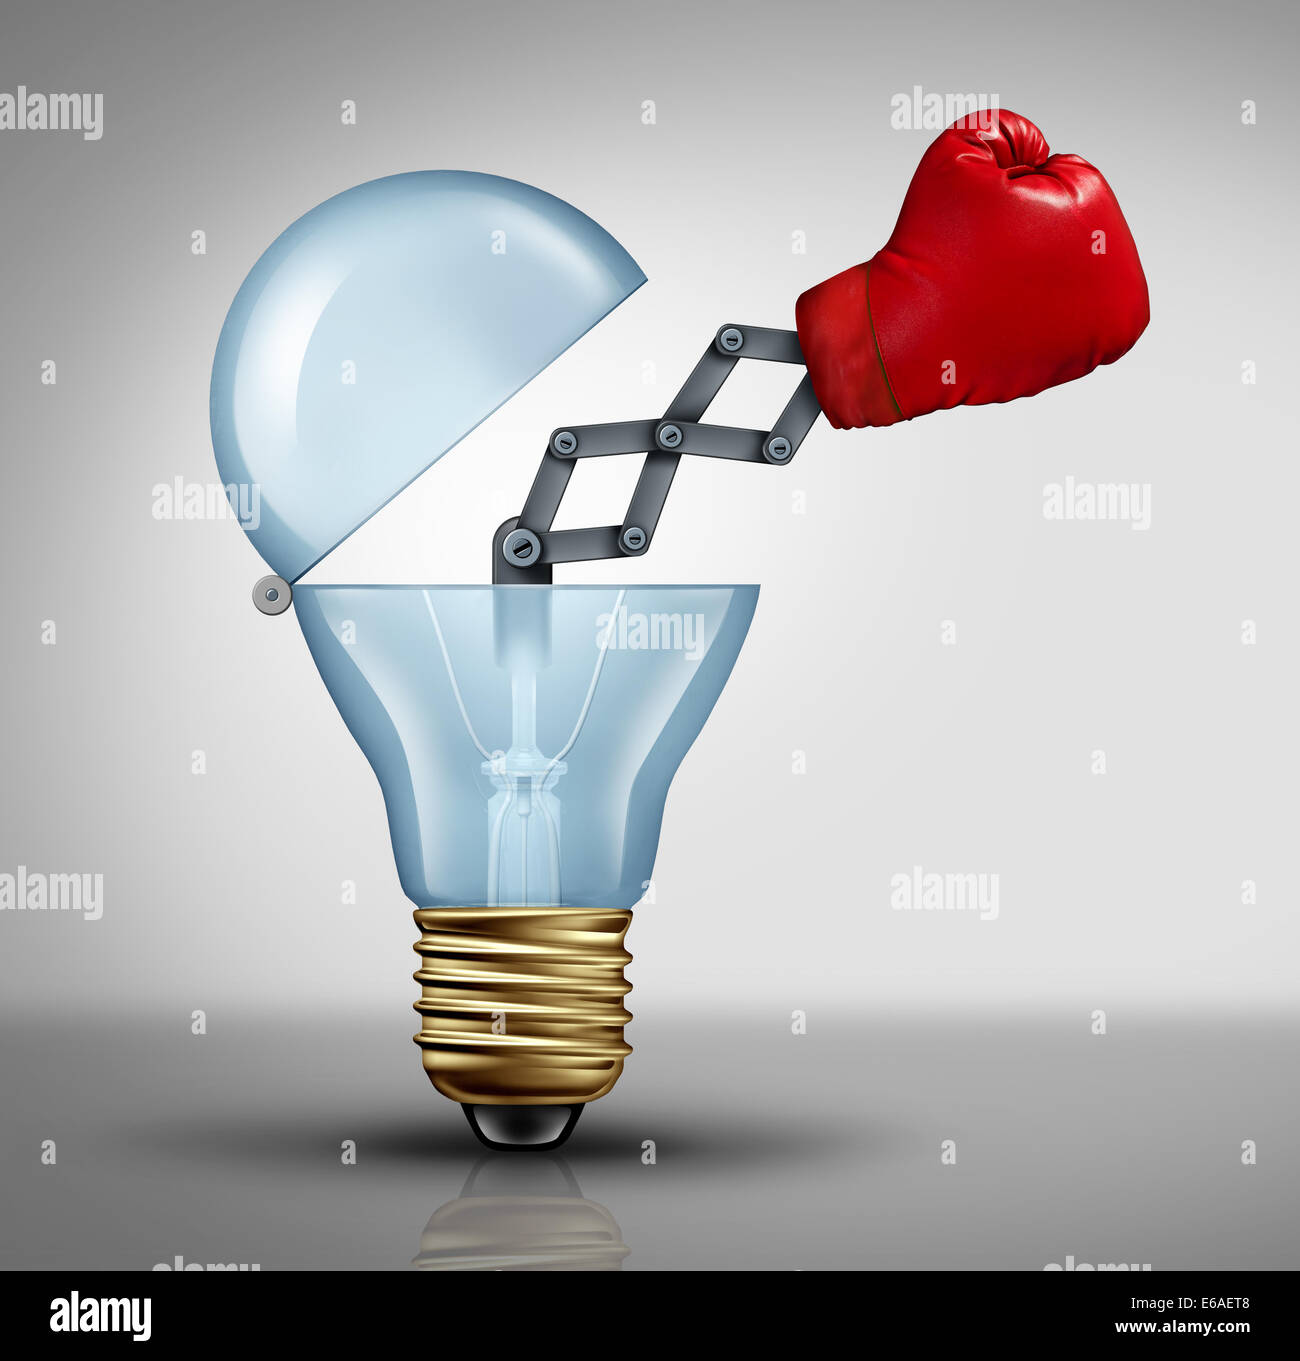 Creative weapon symbol and game changer business concept for the power of ideas and fighting to pitch powerful innovation - Stock Image